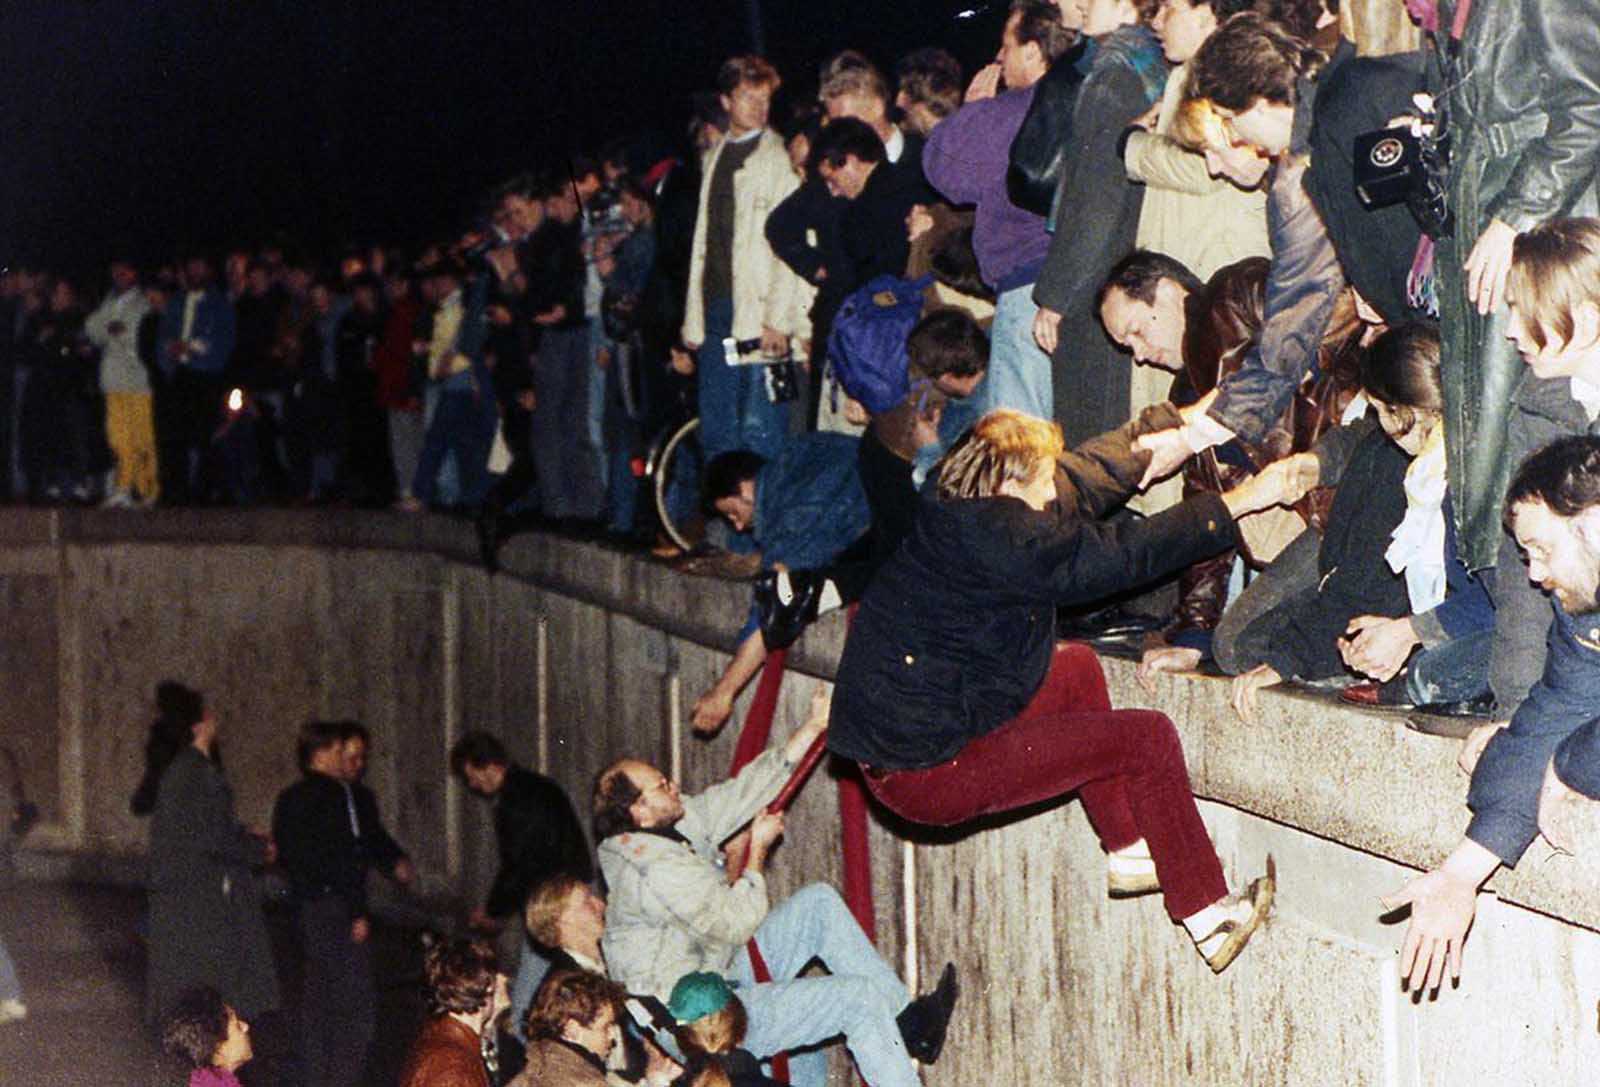 East Berliners get helping hands from West Berliners as they climb the Berlin Wall which divided the city for decades, near the Brandenburger Tor (Brandenburg Gate) on November 10, 1989.